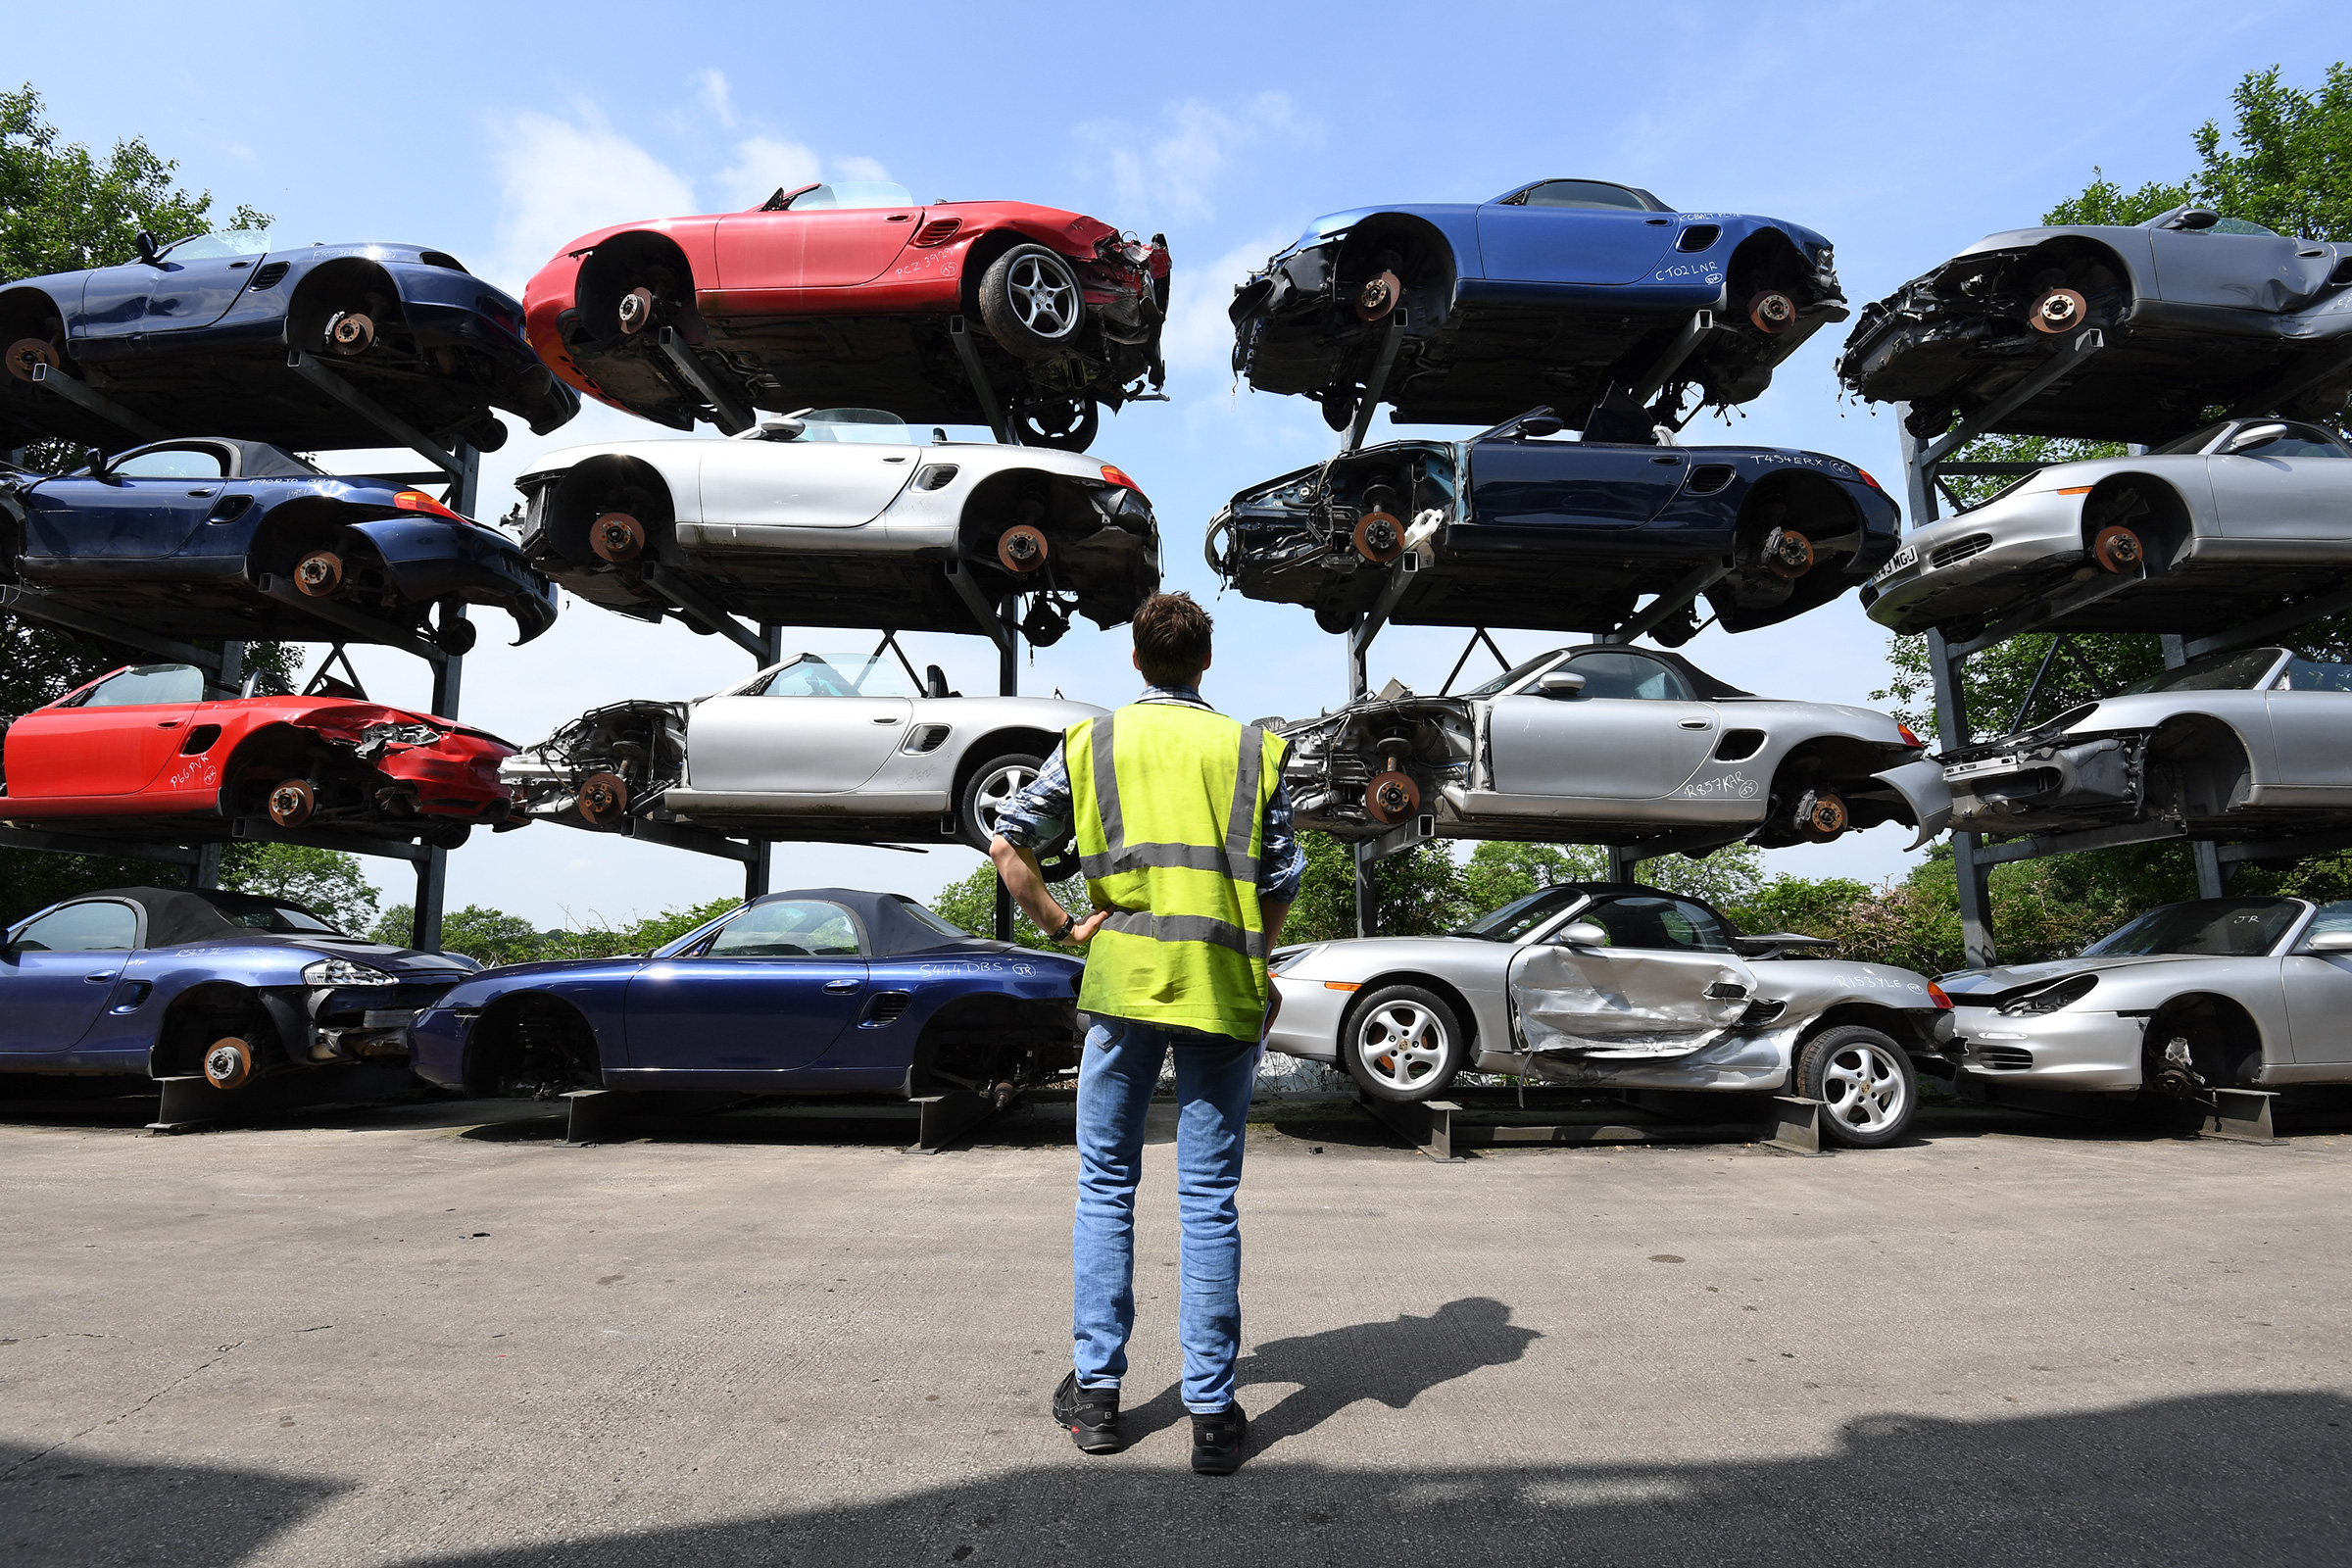 Salvage Supercars The Uk Scrapyard With A Difference Auto Express